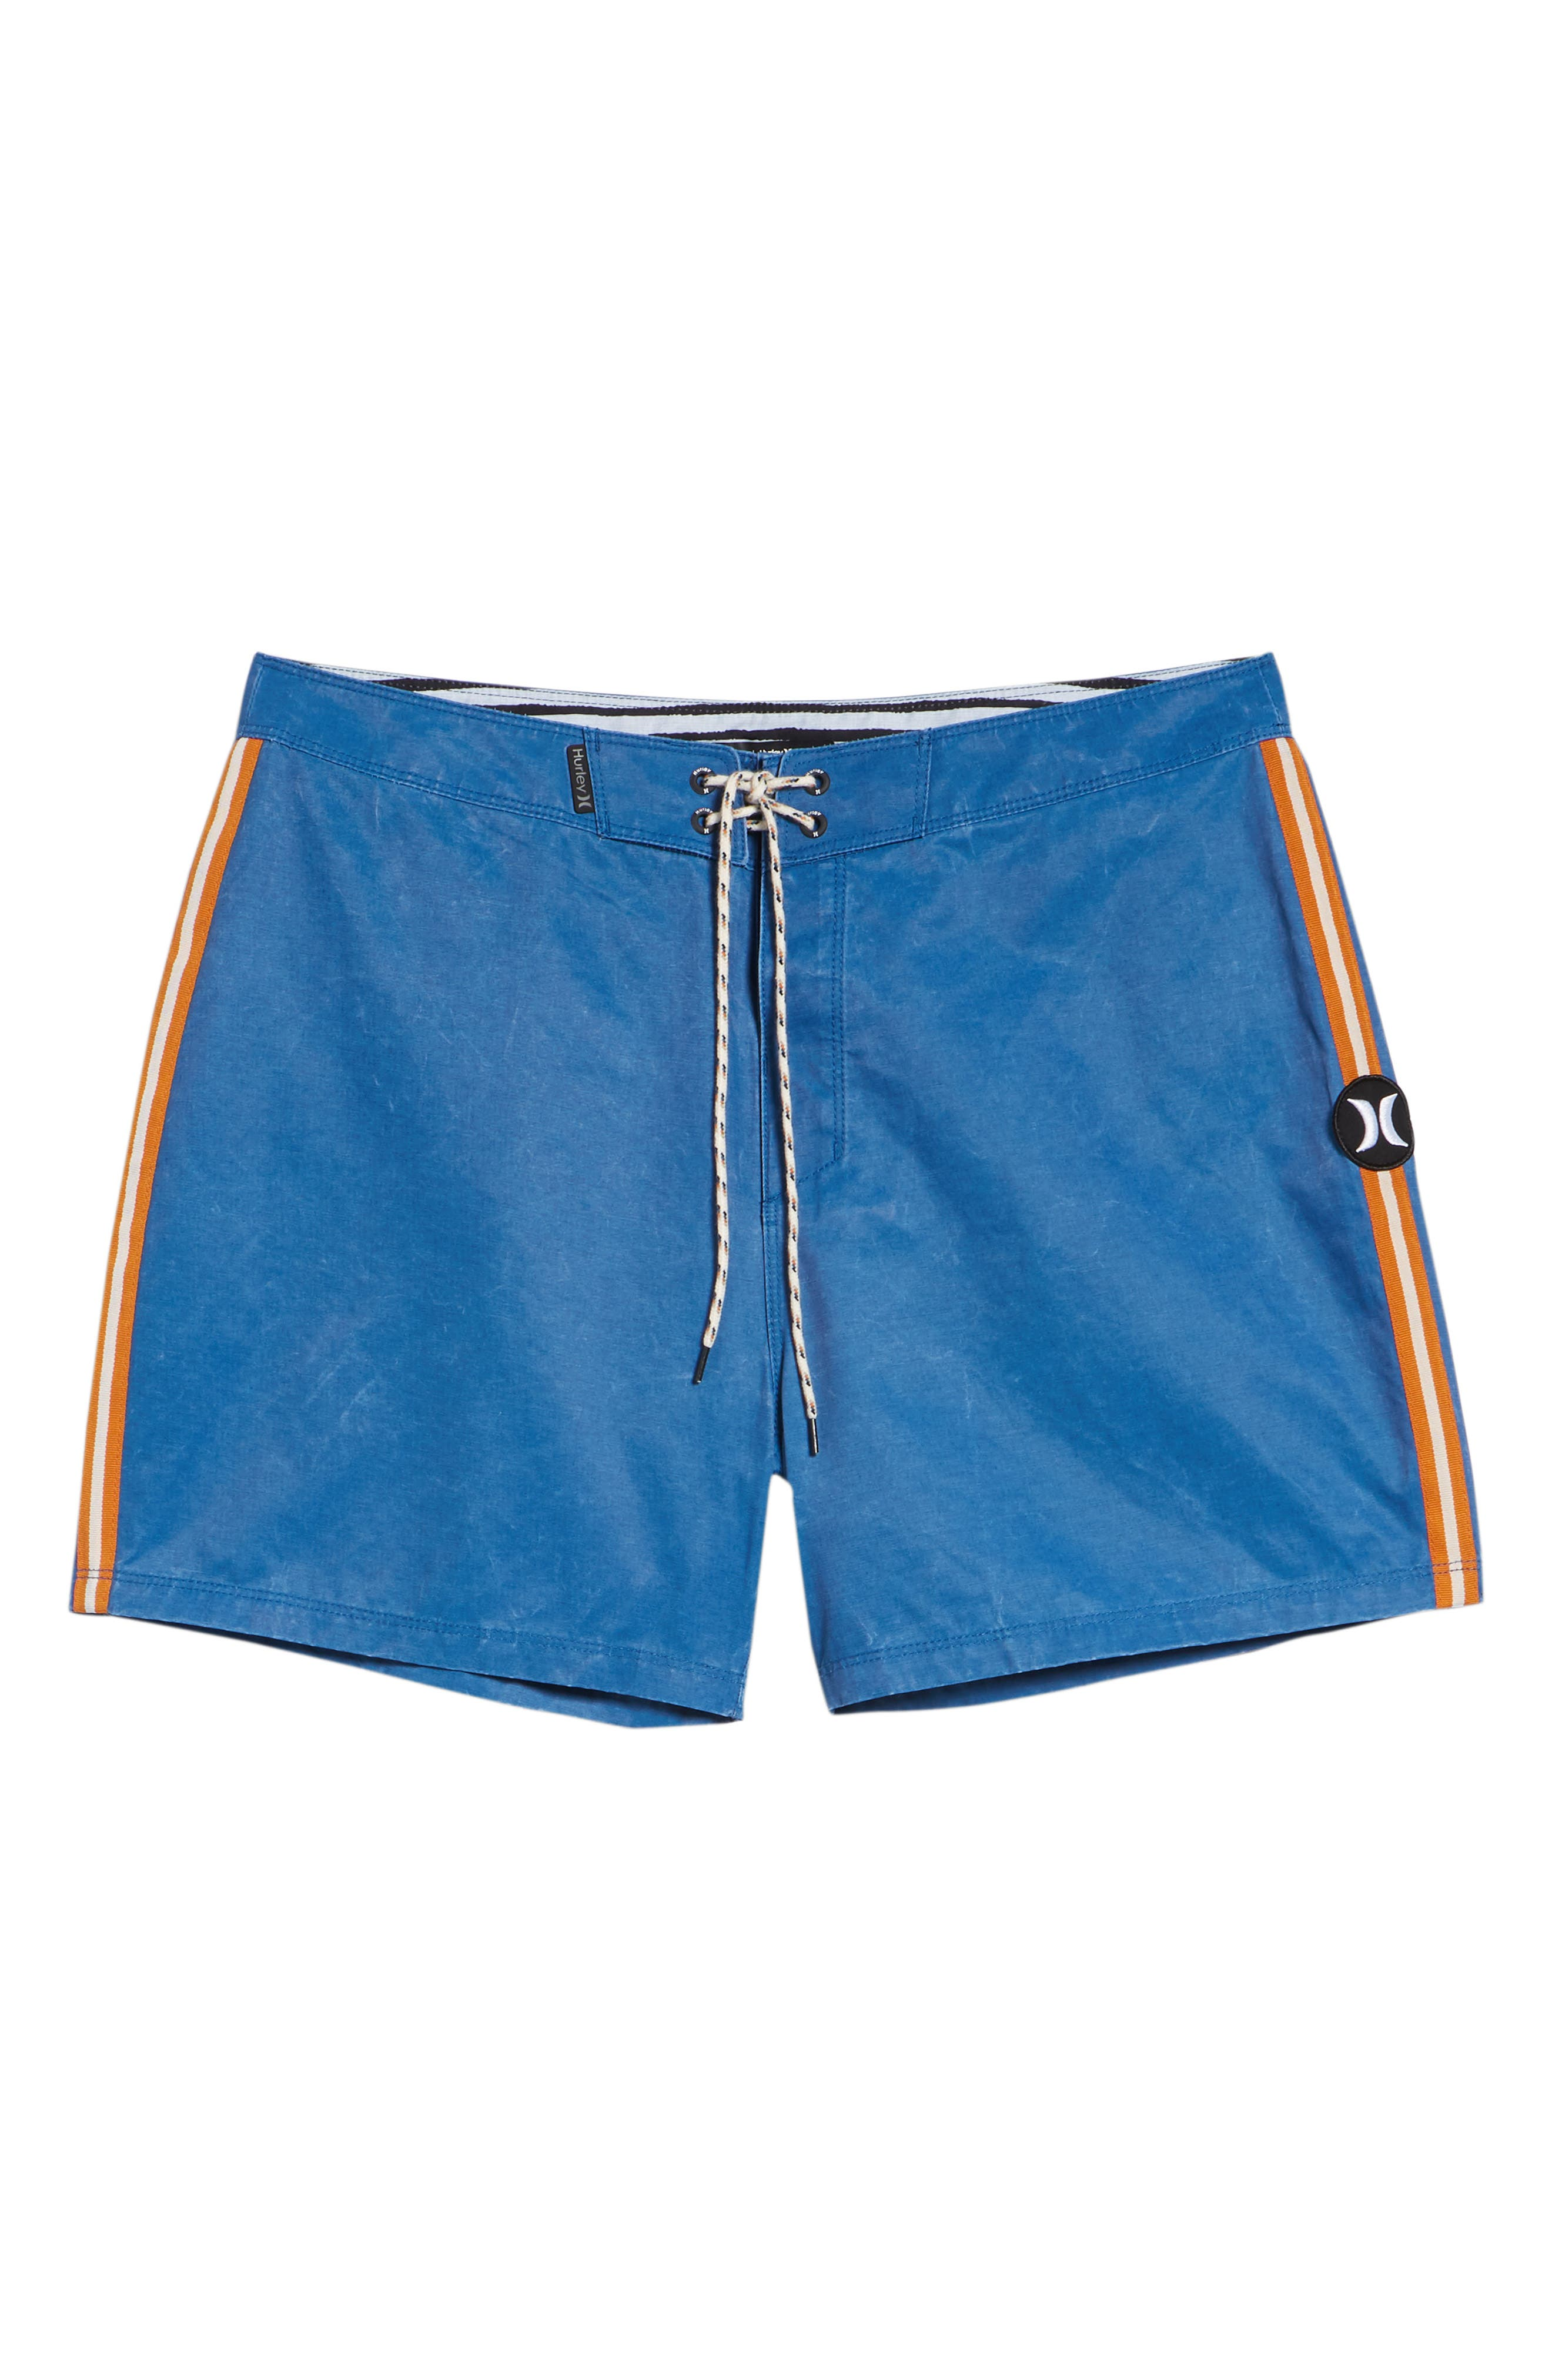 Navigation Board Shorts,                             Alternate thumbnail 6, color,                             474